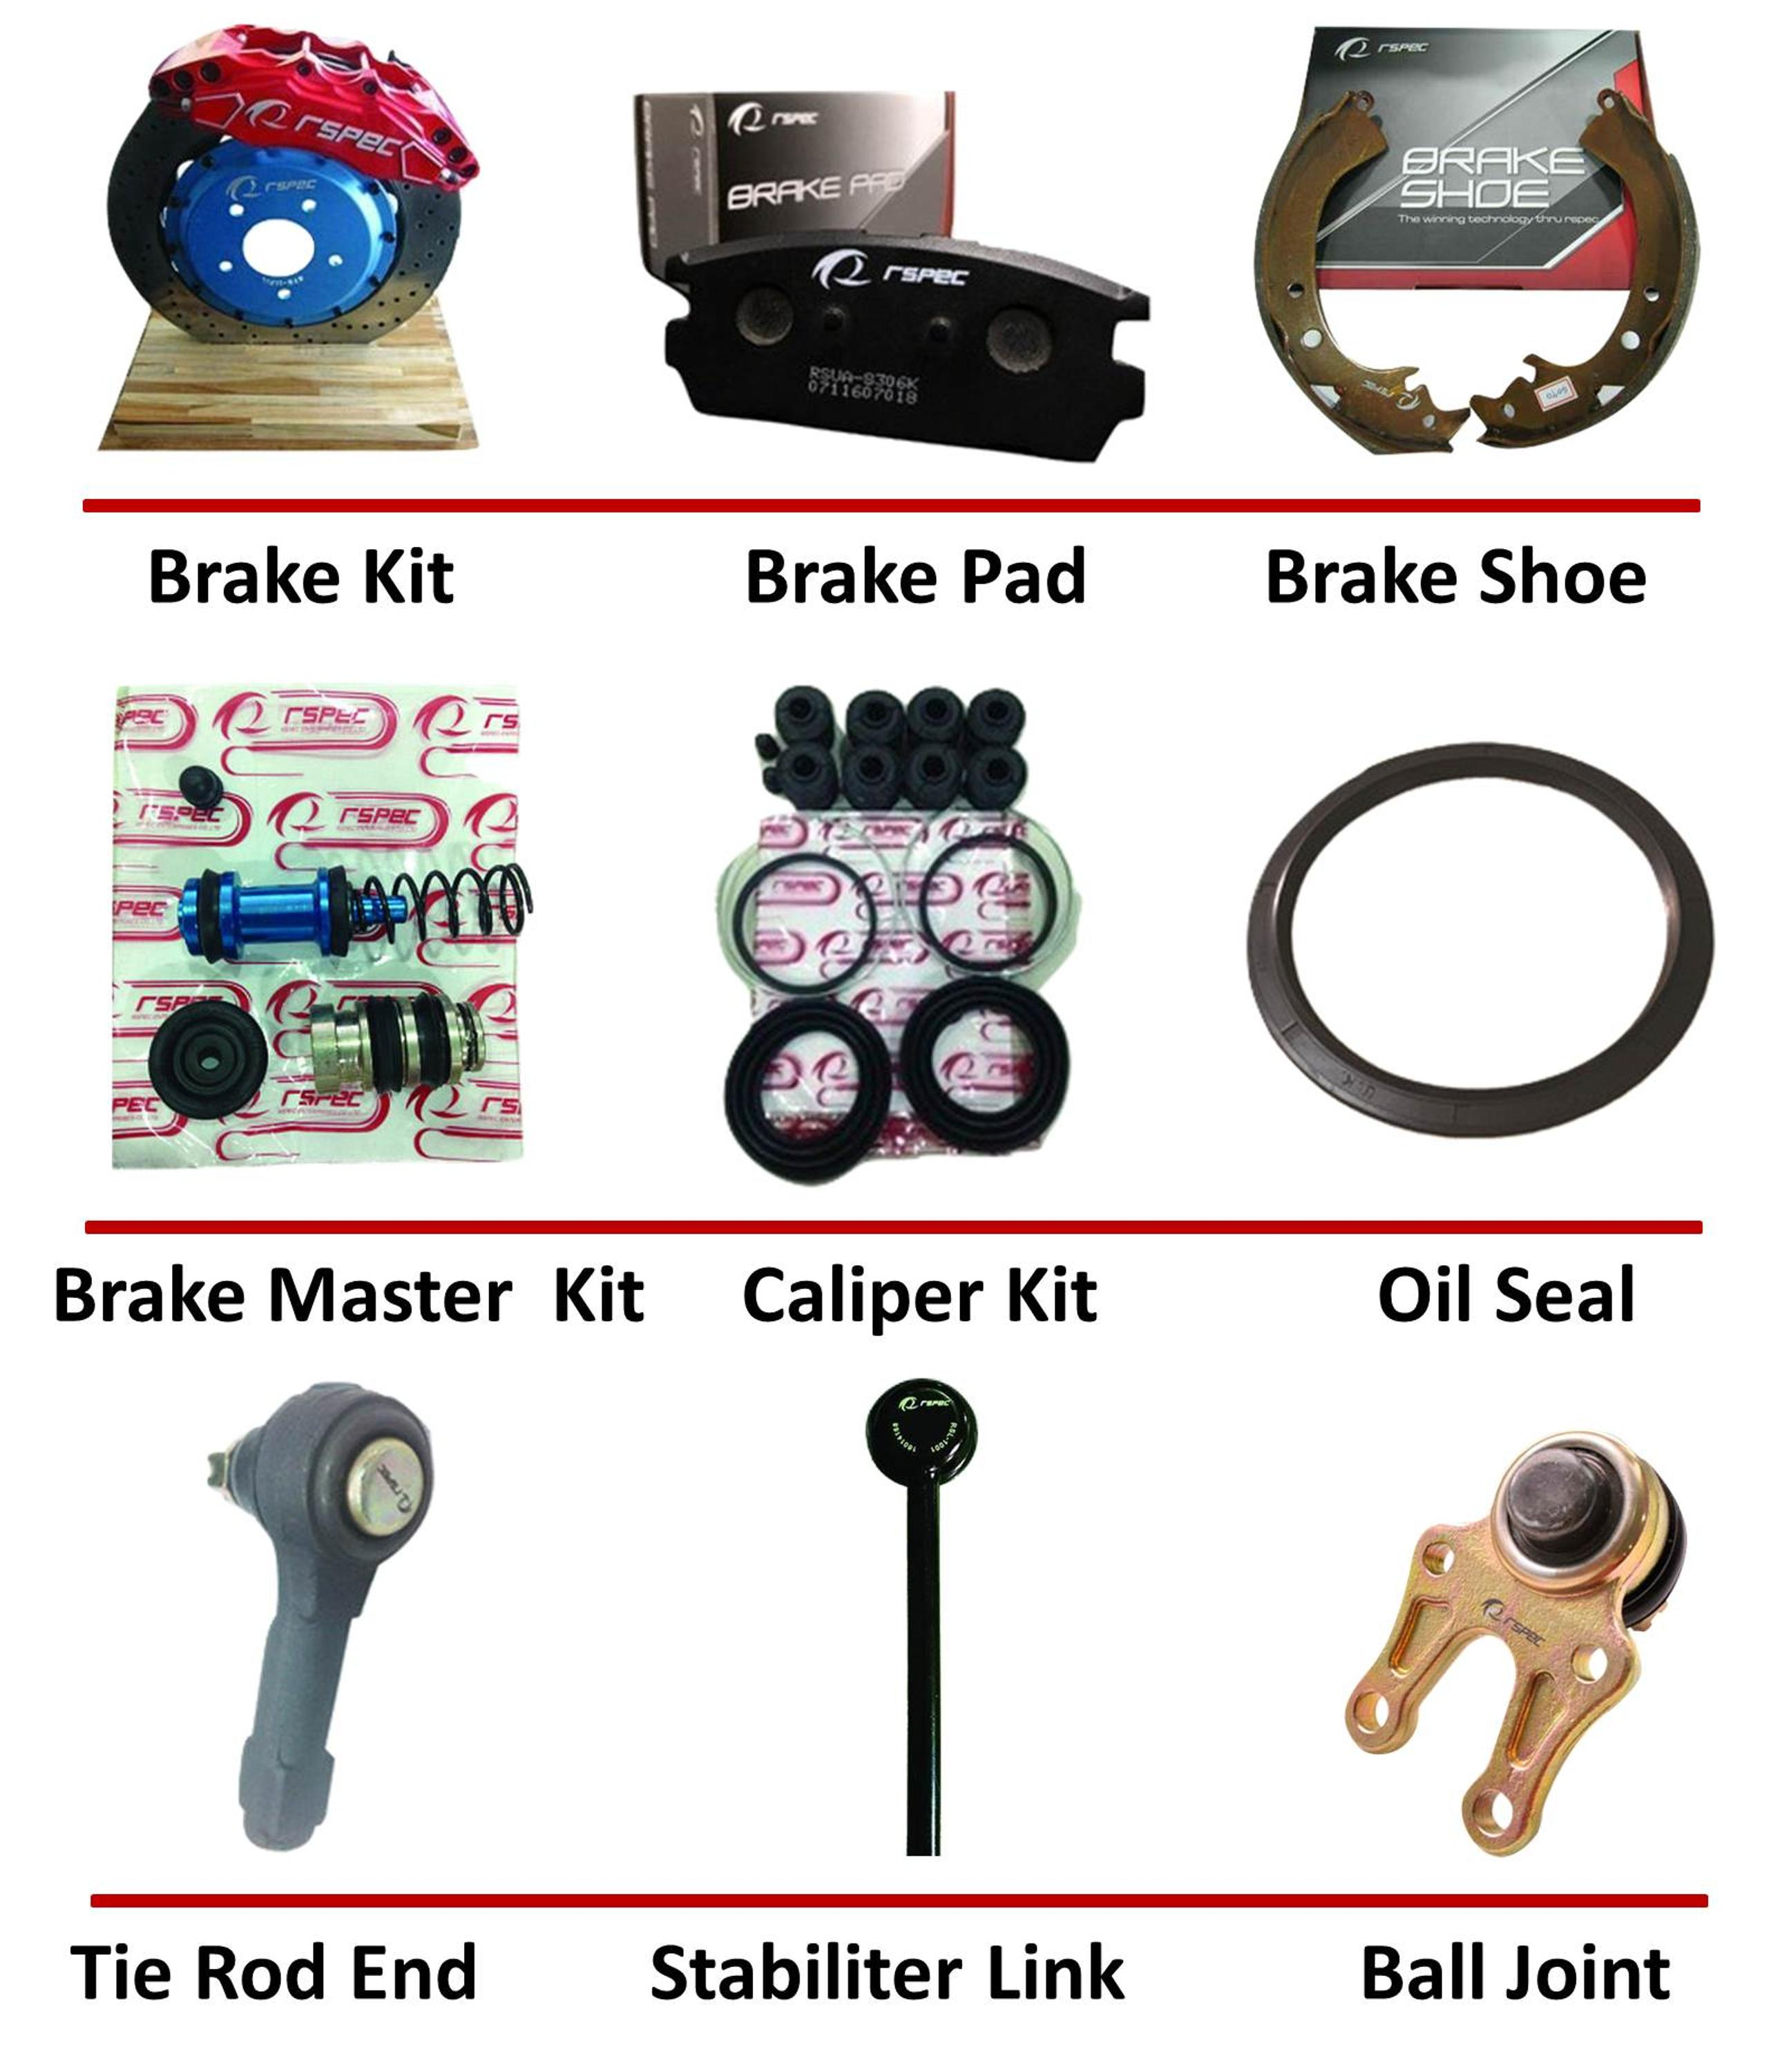 racing 4pot6pot8pot big brake kit/brake cover kit